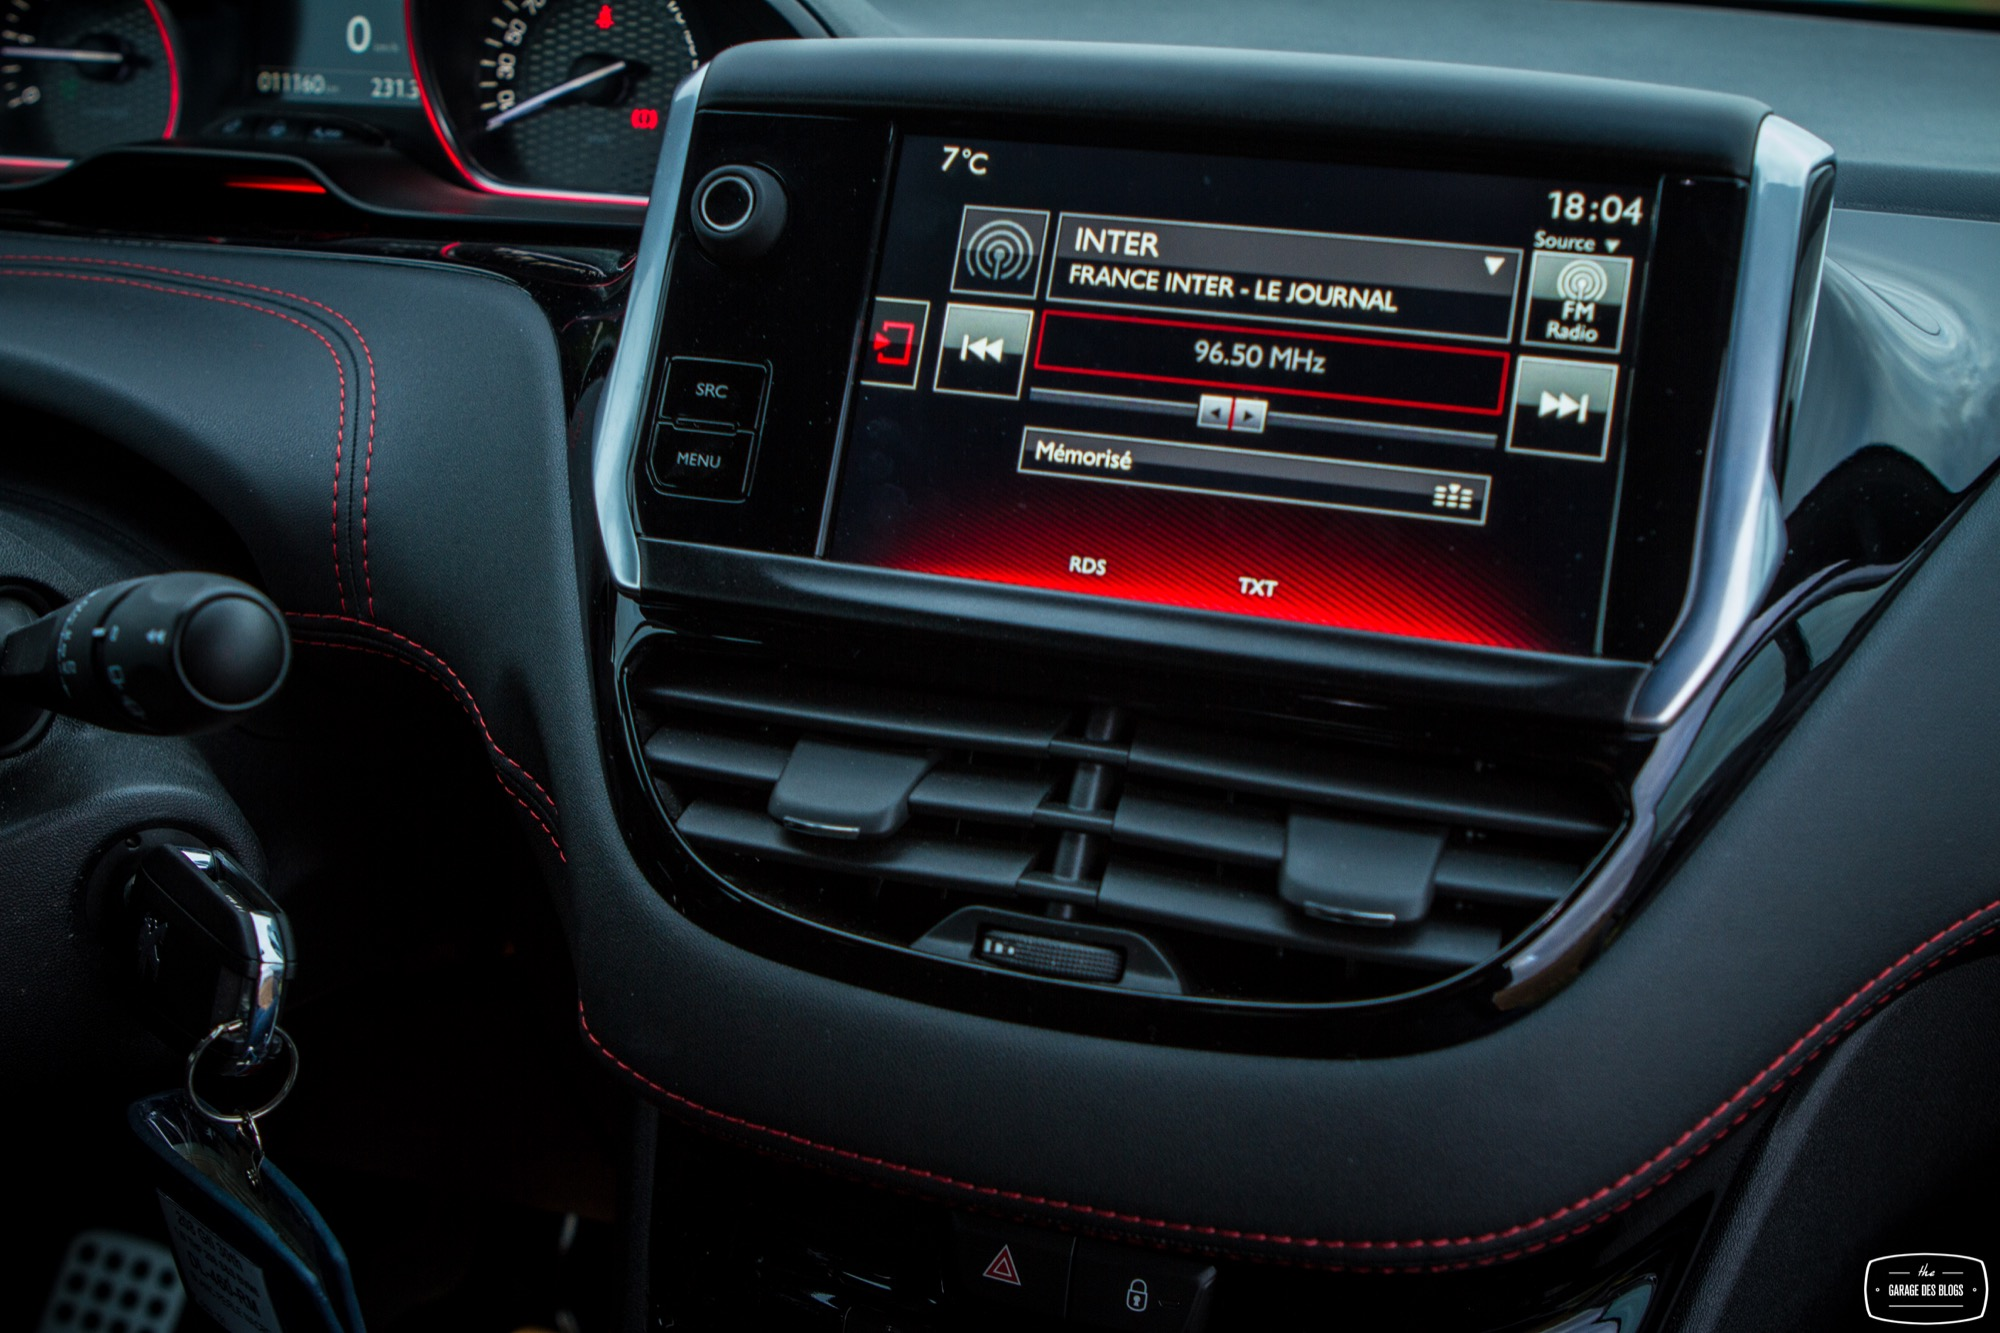 Essai peugeot 208 gti 30th interieur 10 le blog de viinz for Interieur peugeot 208